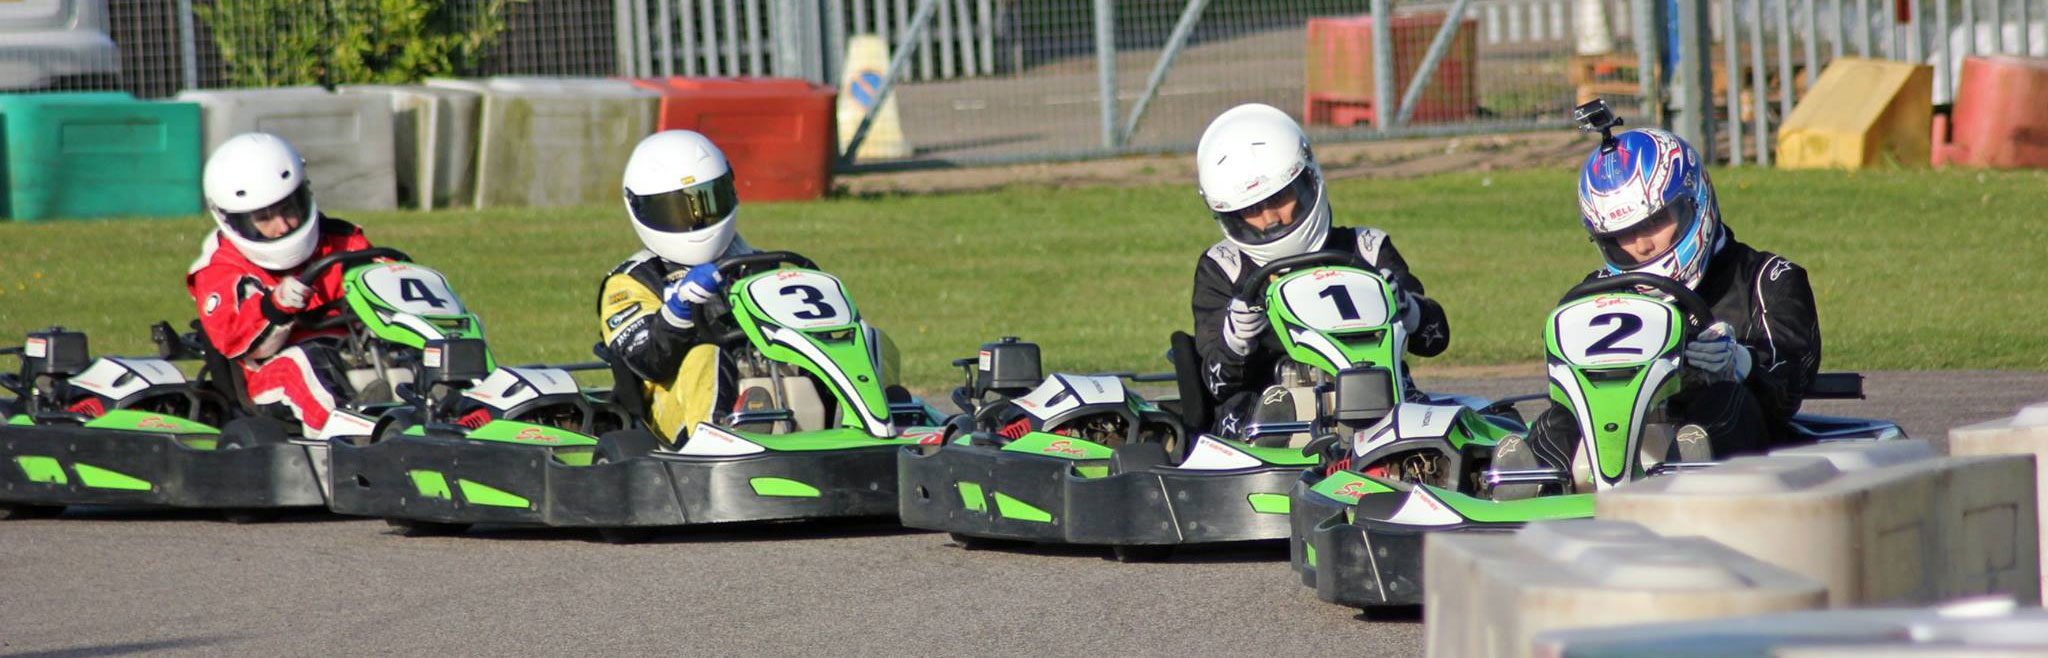 Team Endurance Karting Leicestershire